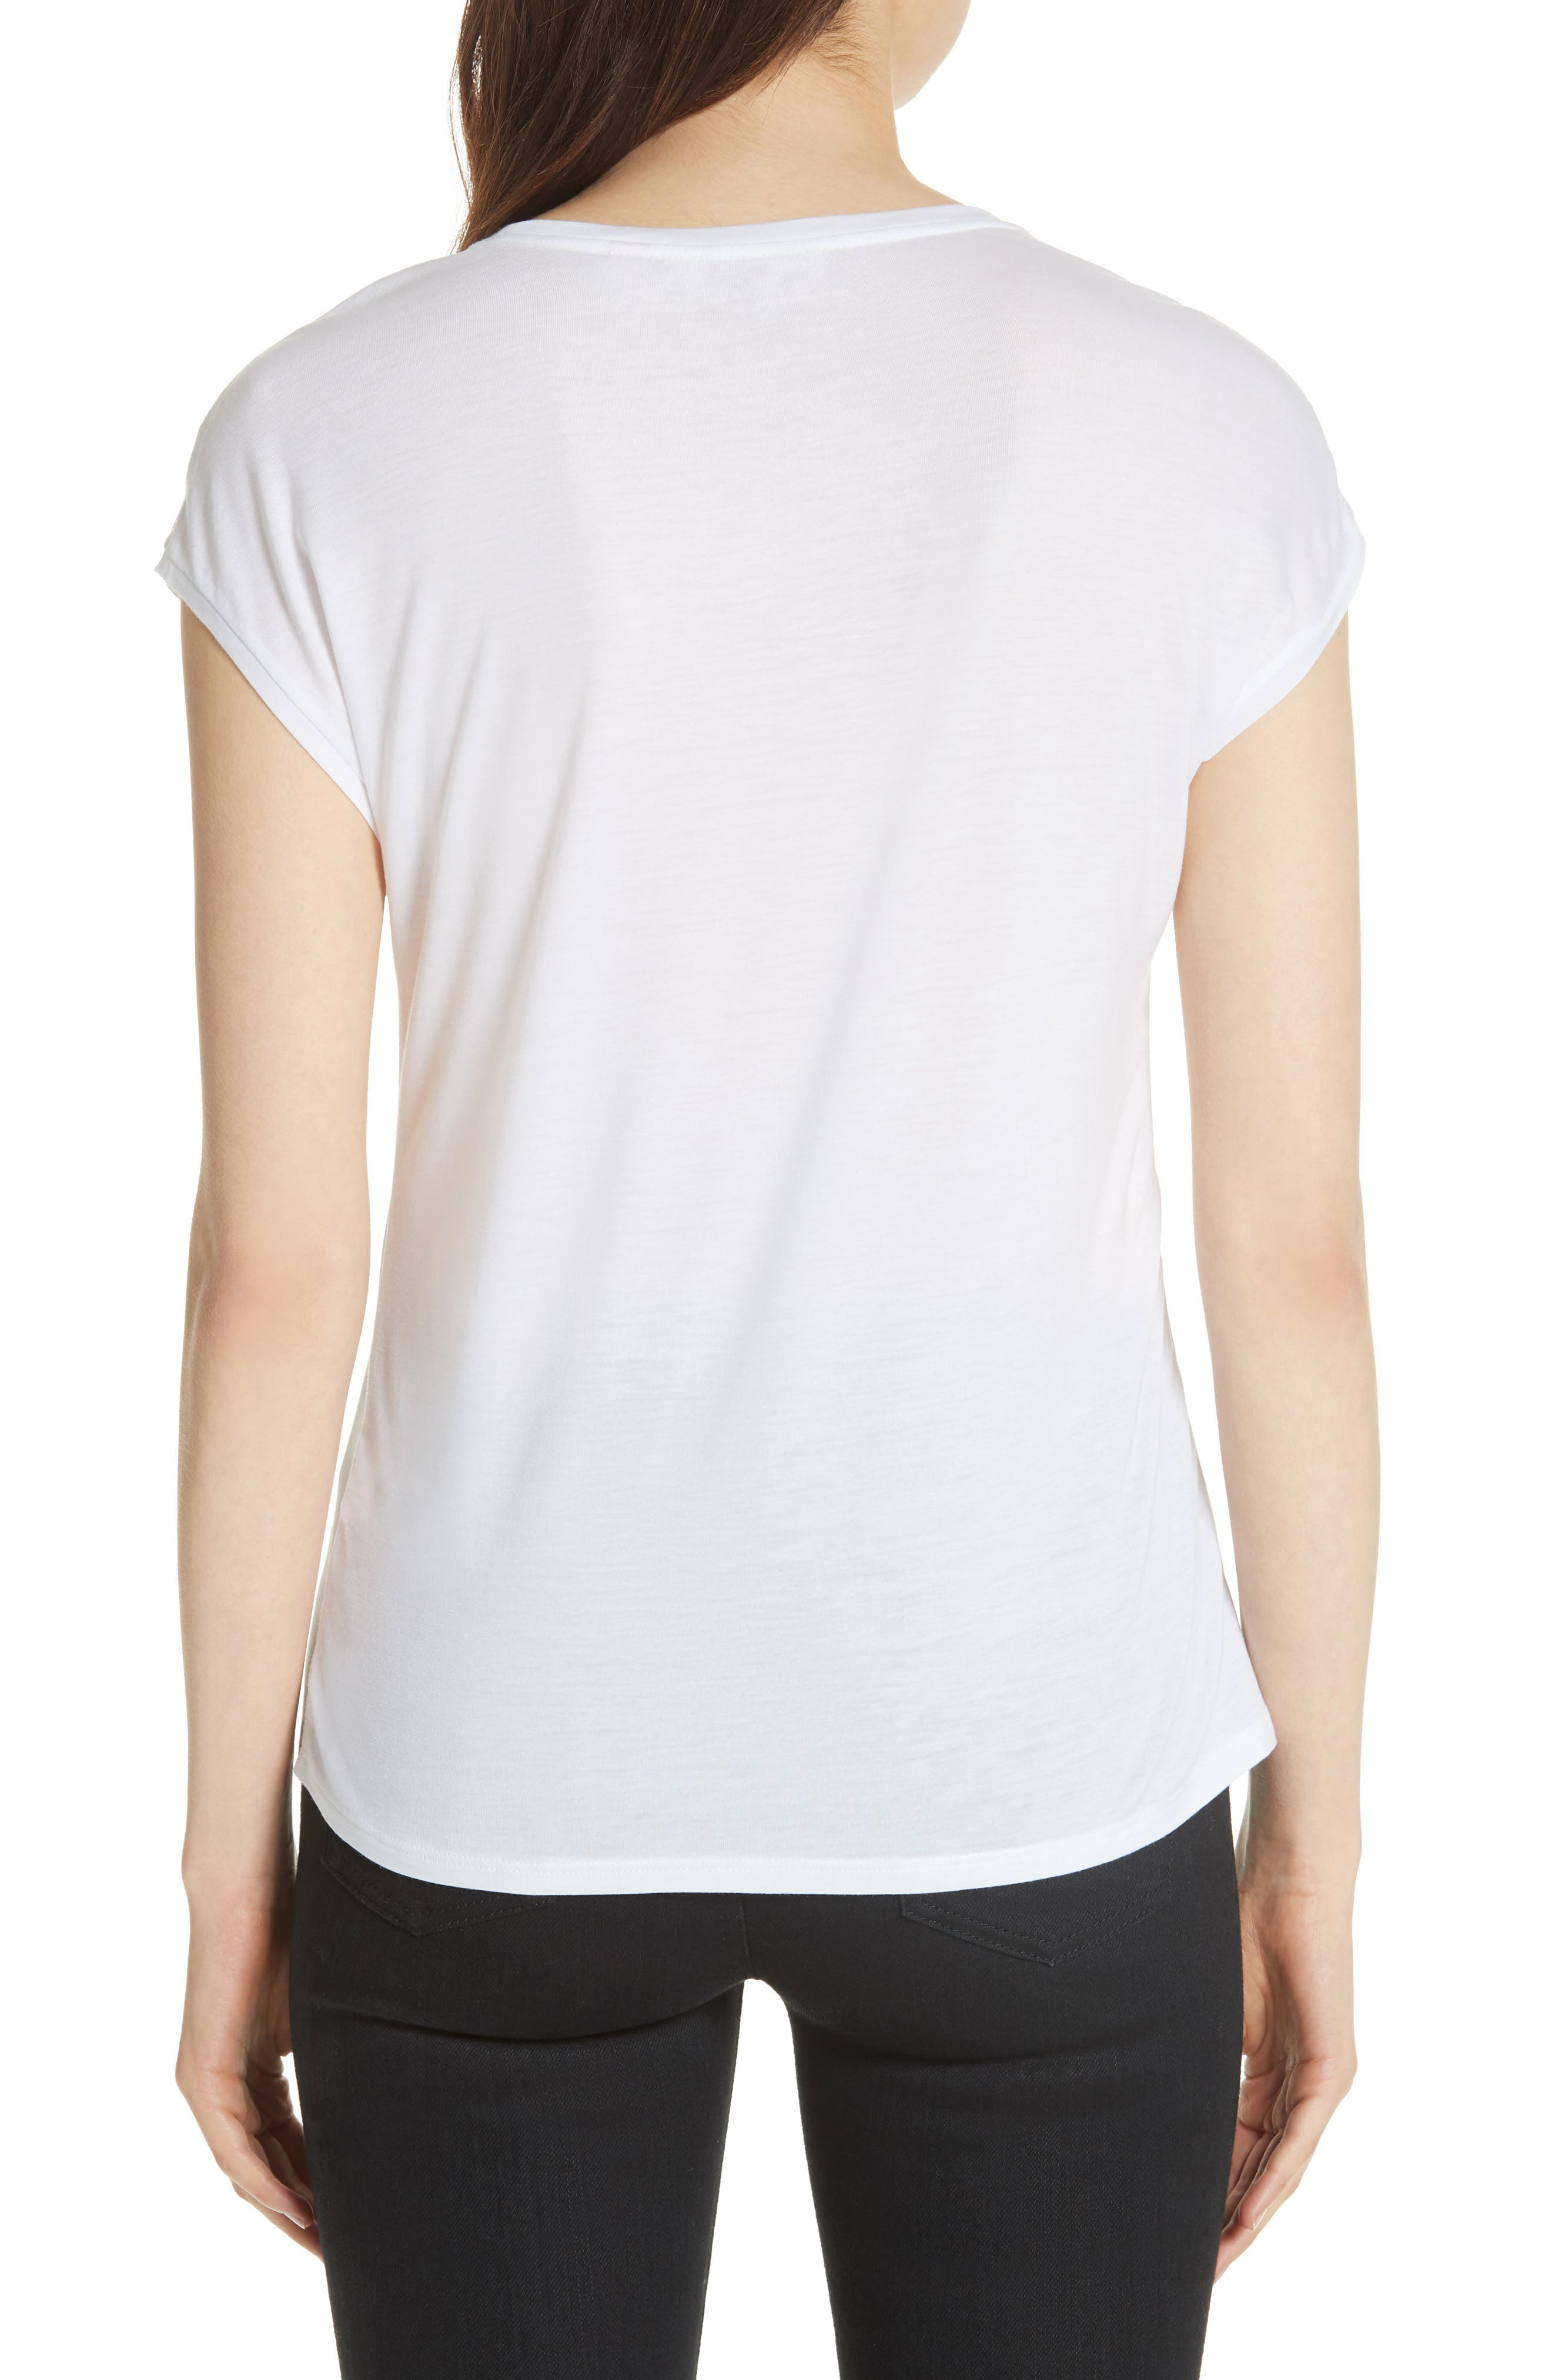 Anee Tranquility Woven Front Top,                             Alternate thumbnail 2, color,                             White